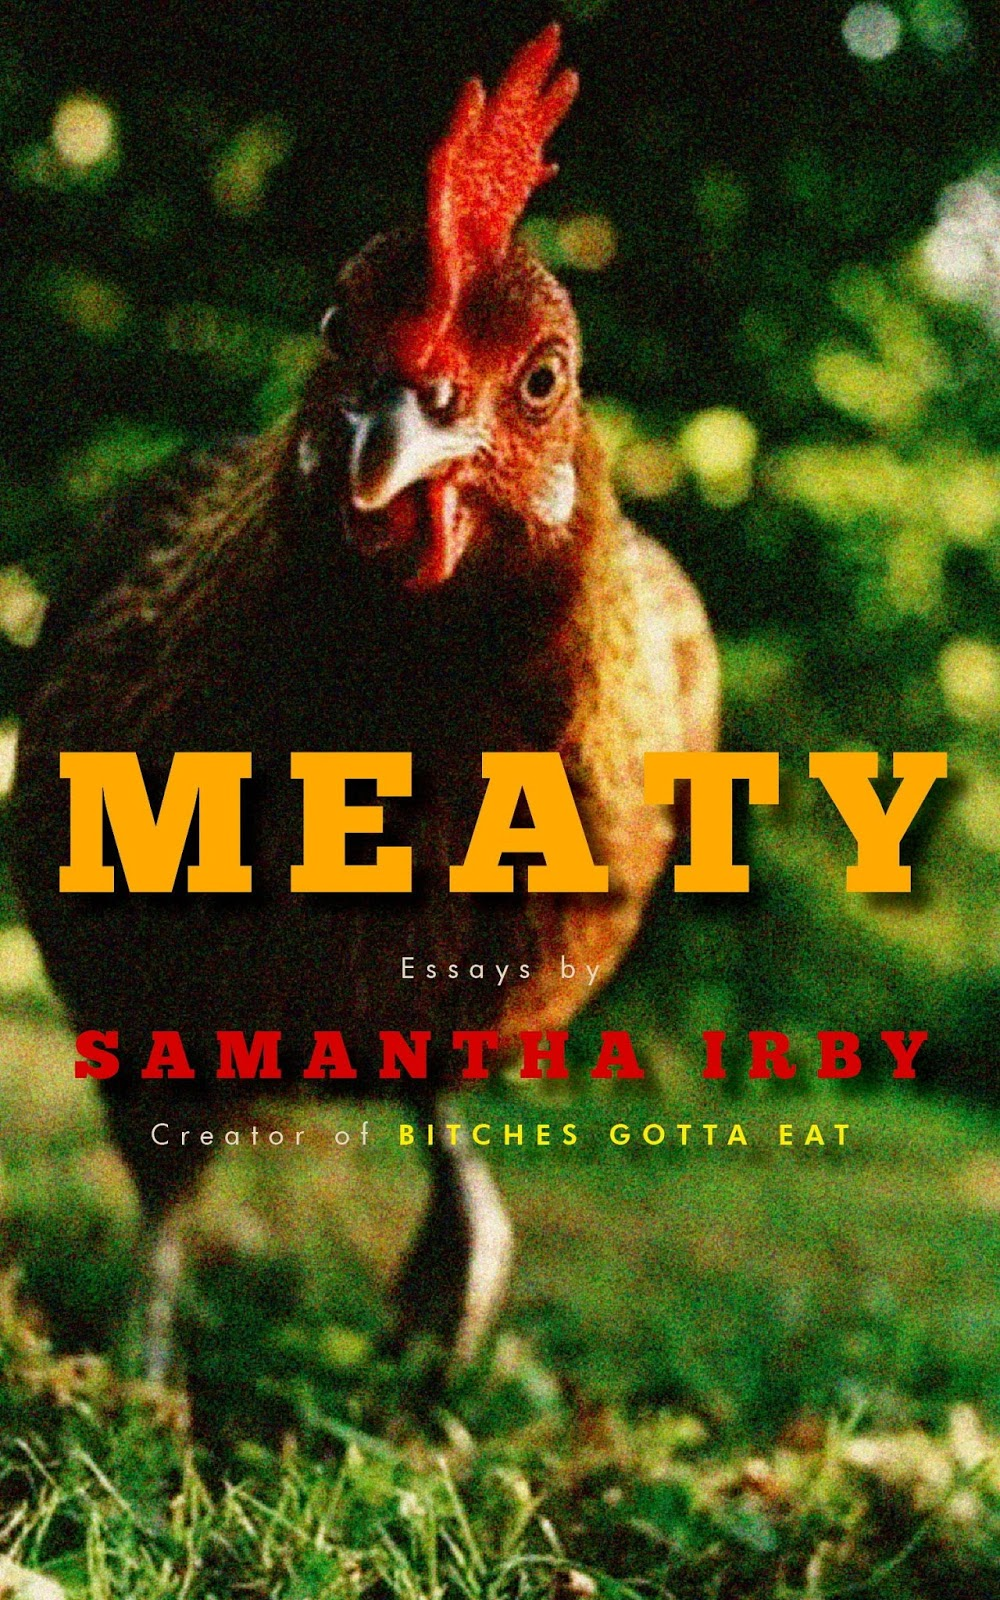 The cover of Meaty that features a photograph bewildered rooster on the cover.